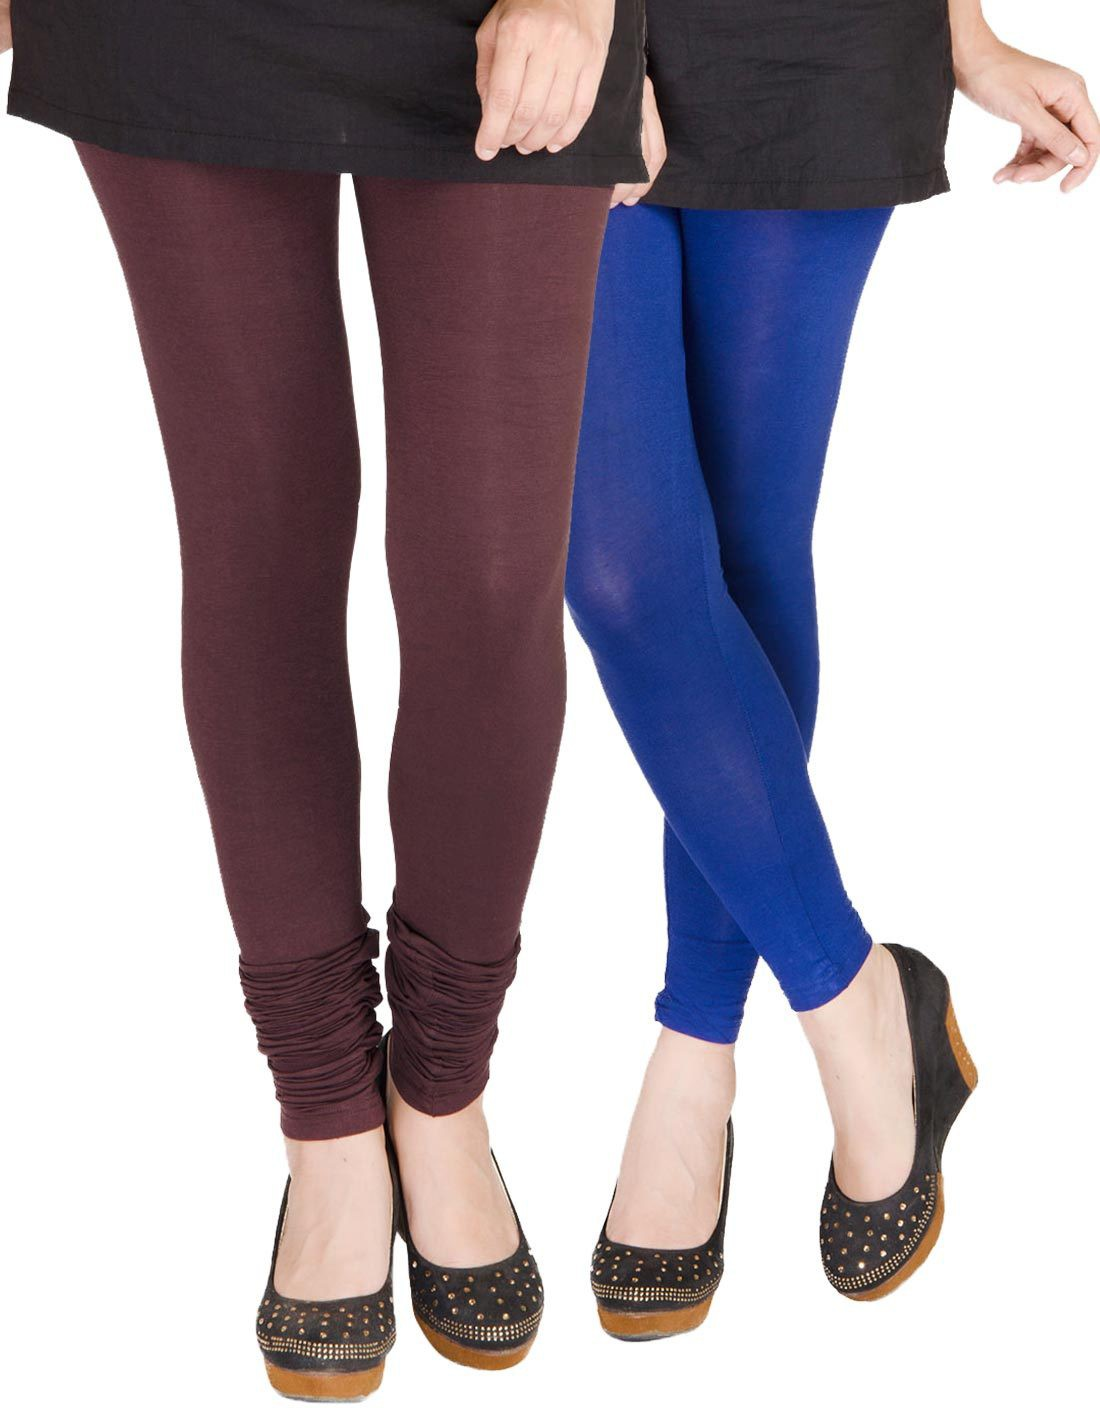 Medoo Womens Brown, Blue Leggings(Pack of 2)